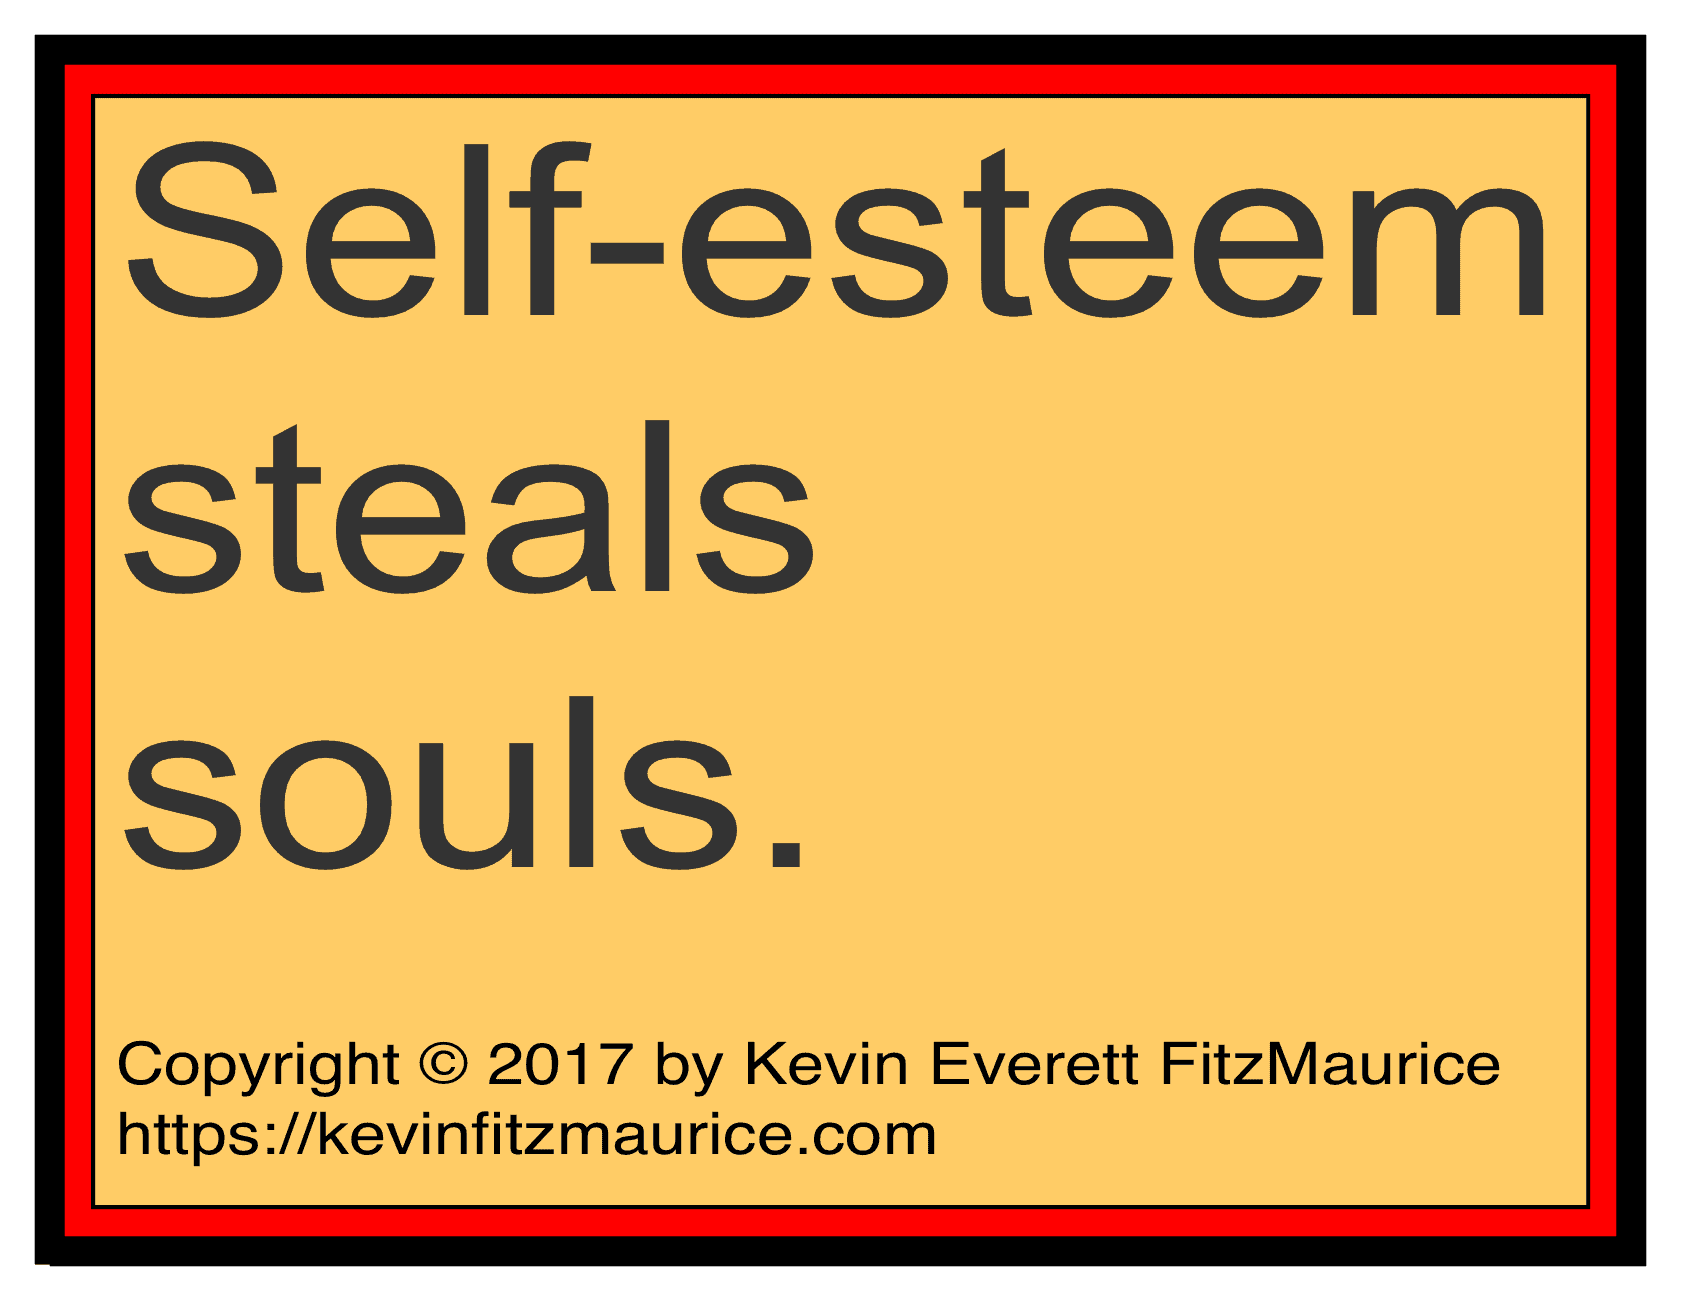 Self-esteem steals souls.